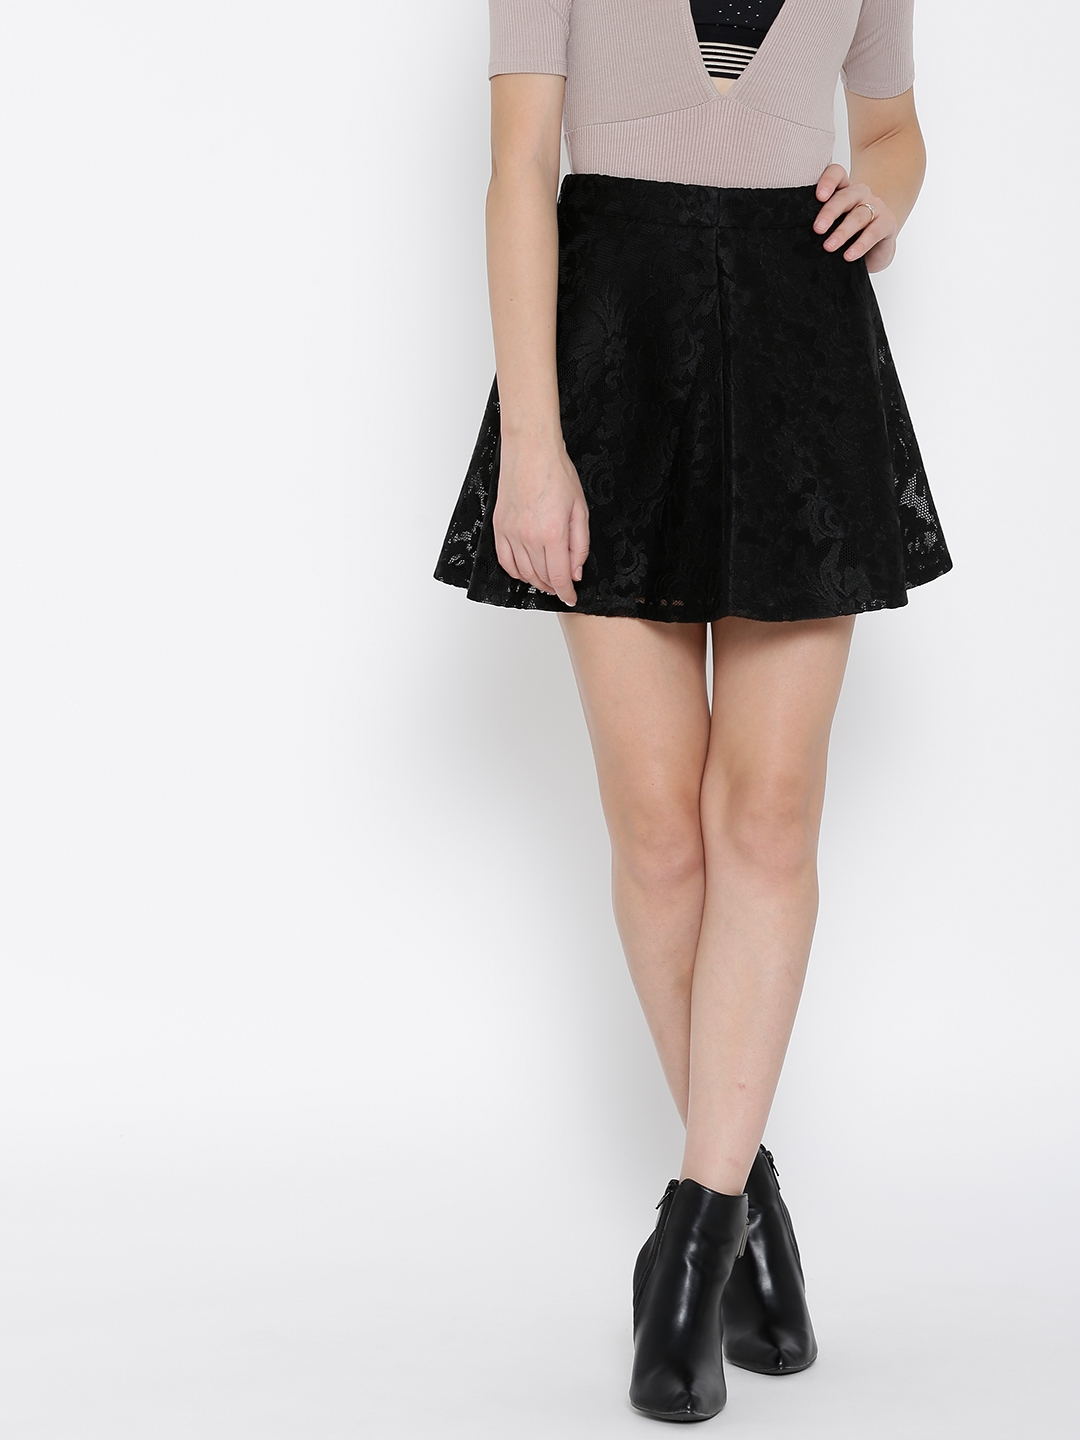 a6febe11f0b8 Buy FOREVER 21 Black Floral Lace Flared Mini Skirt - Skirts for ...